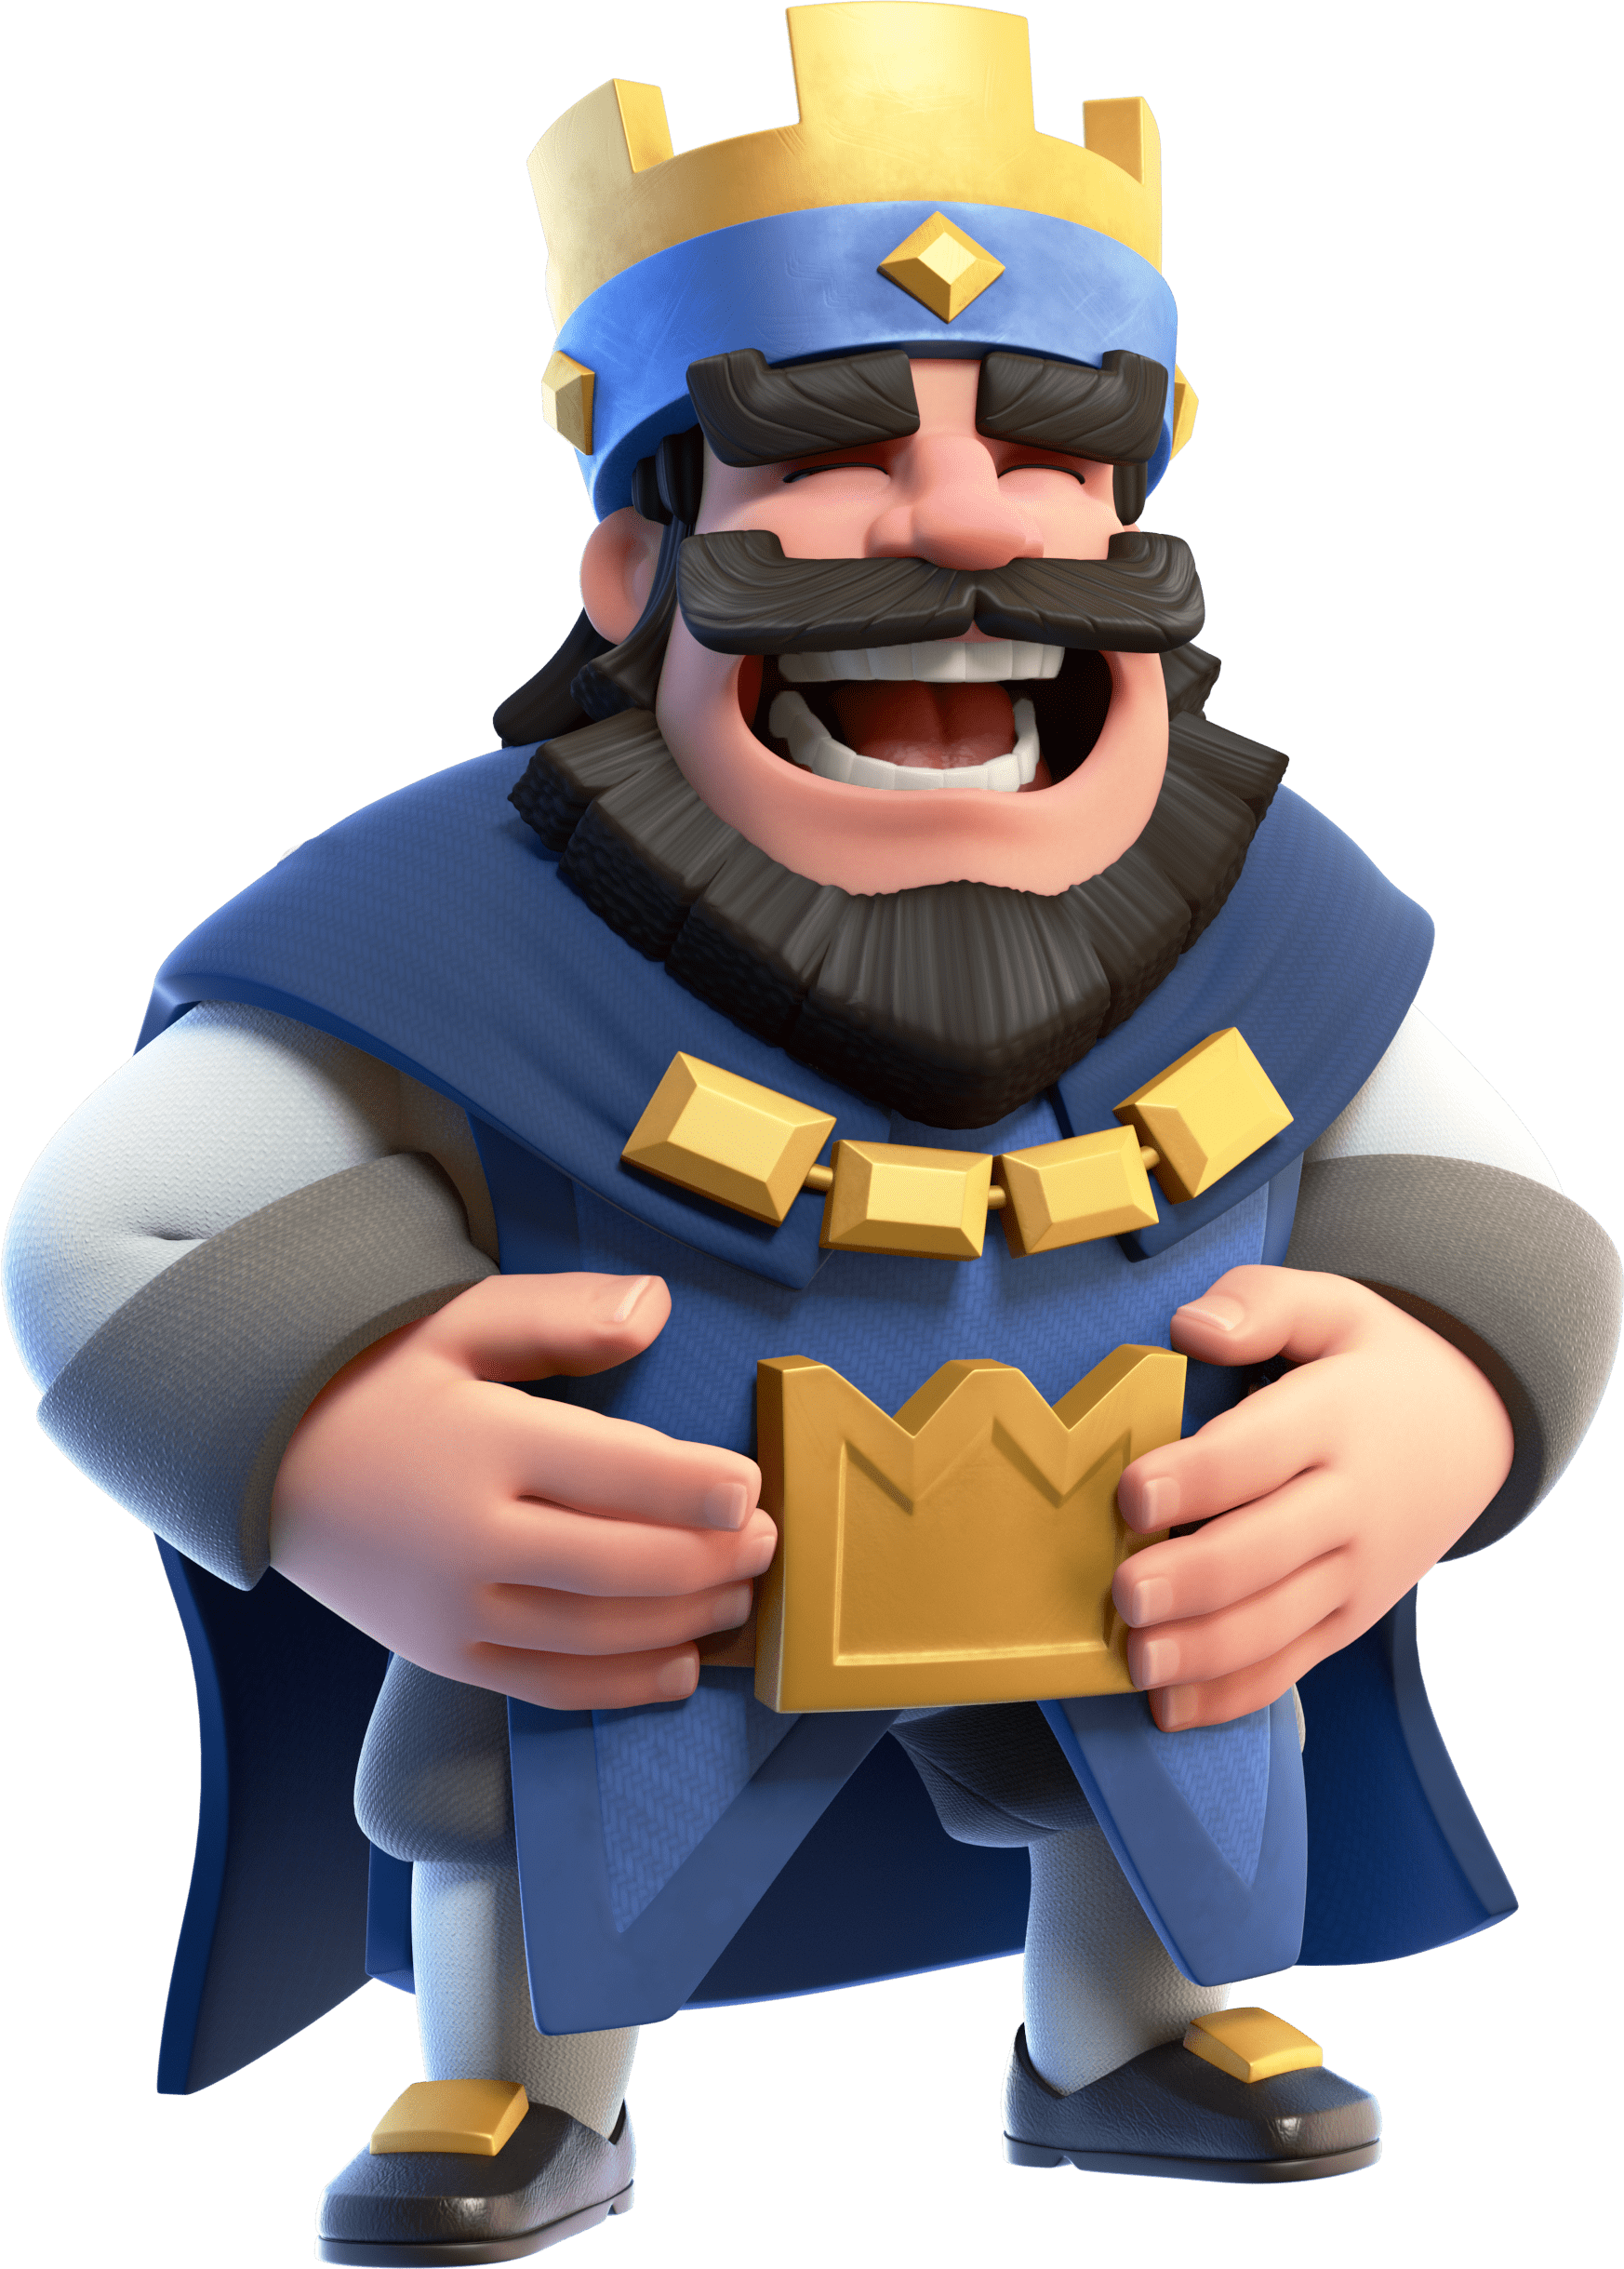 Clash royale image png. Transparent images stickpng laughing